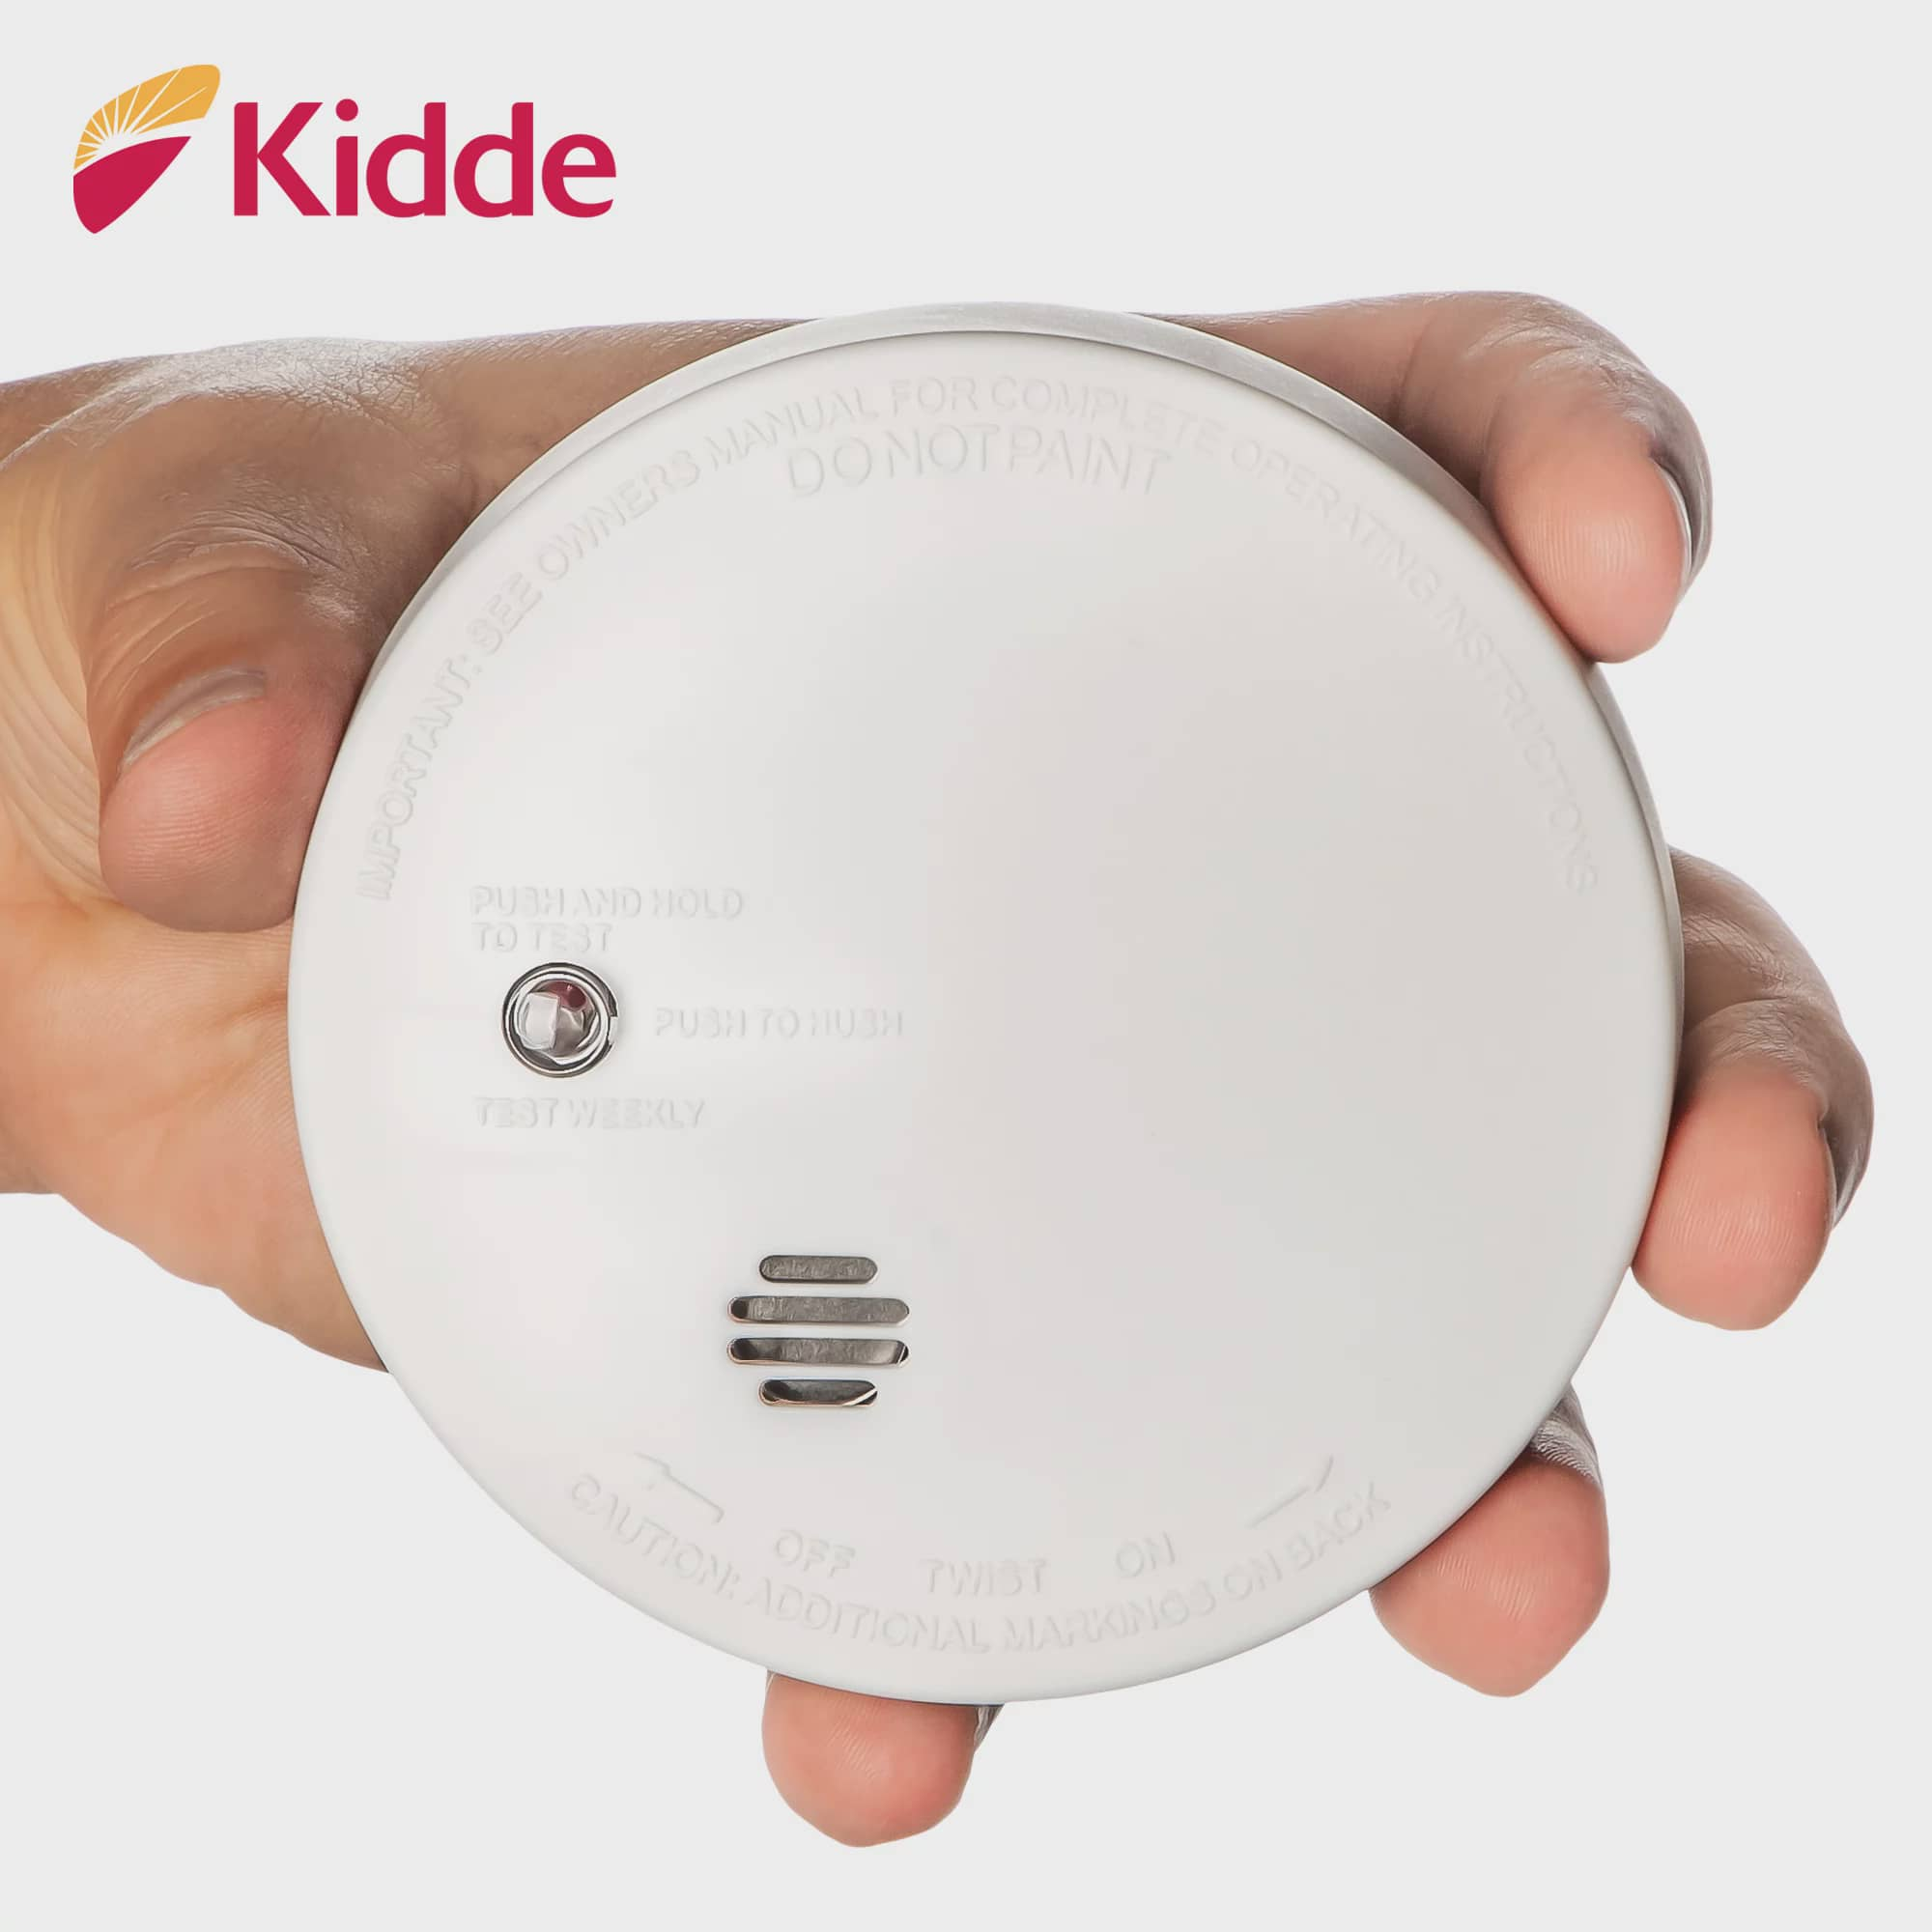 Kidde Fire Sentry Micro Profile 3 Year Smoke Alarm 9 Volt Battery